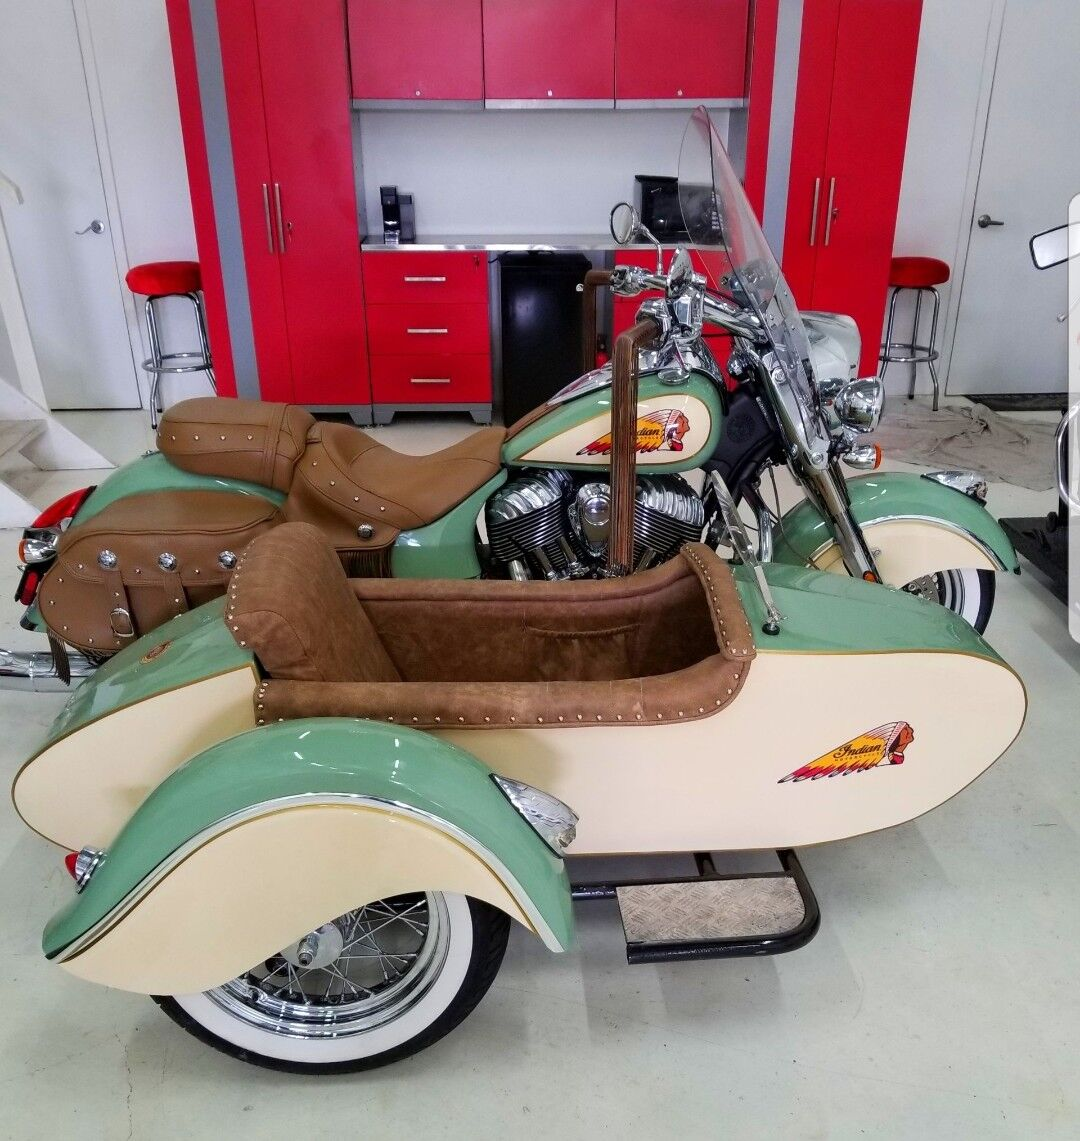 2014 Indian Chief  Indian Motorcycle With Sidecar